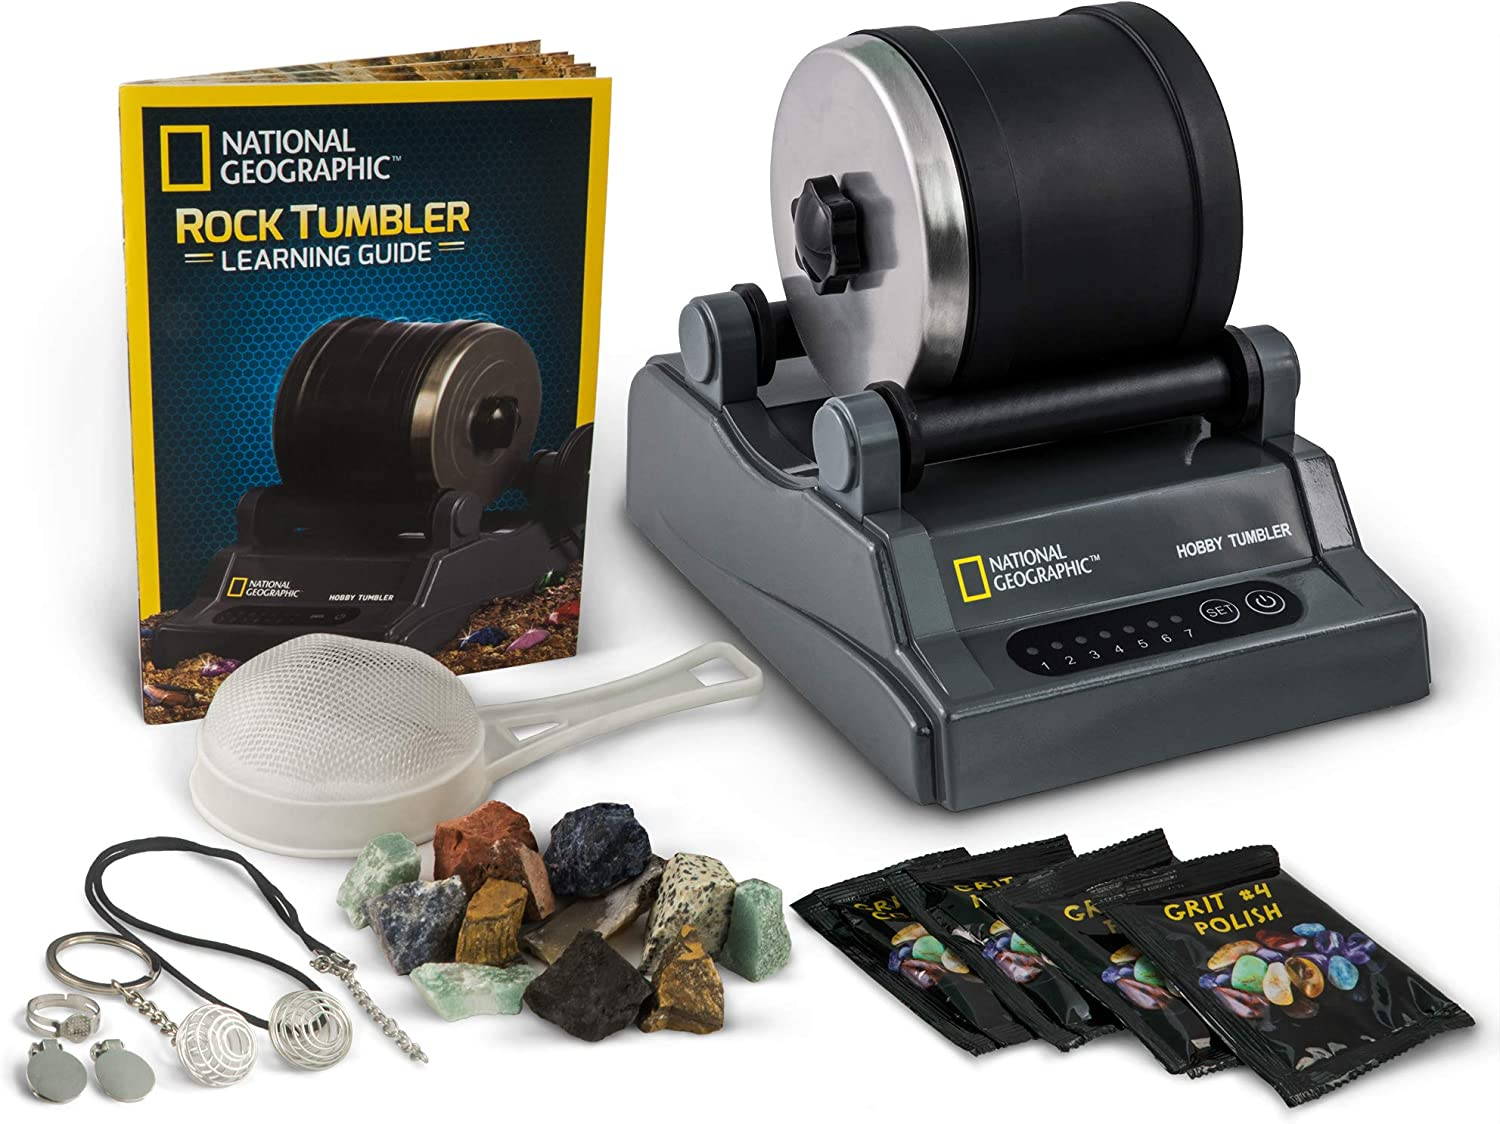 NATIONAL GEOGRAPHIC Hobby Rock Tumbler Kit - Includes ...